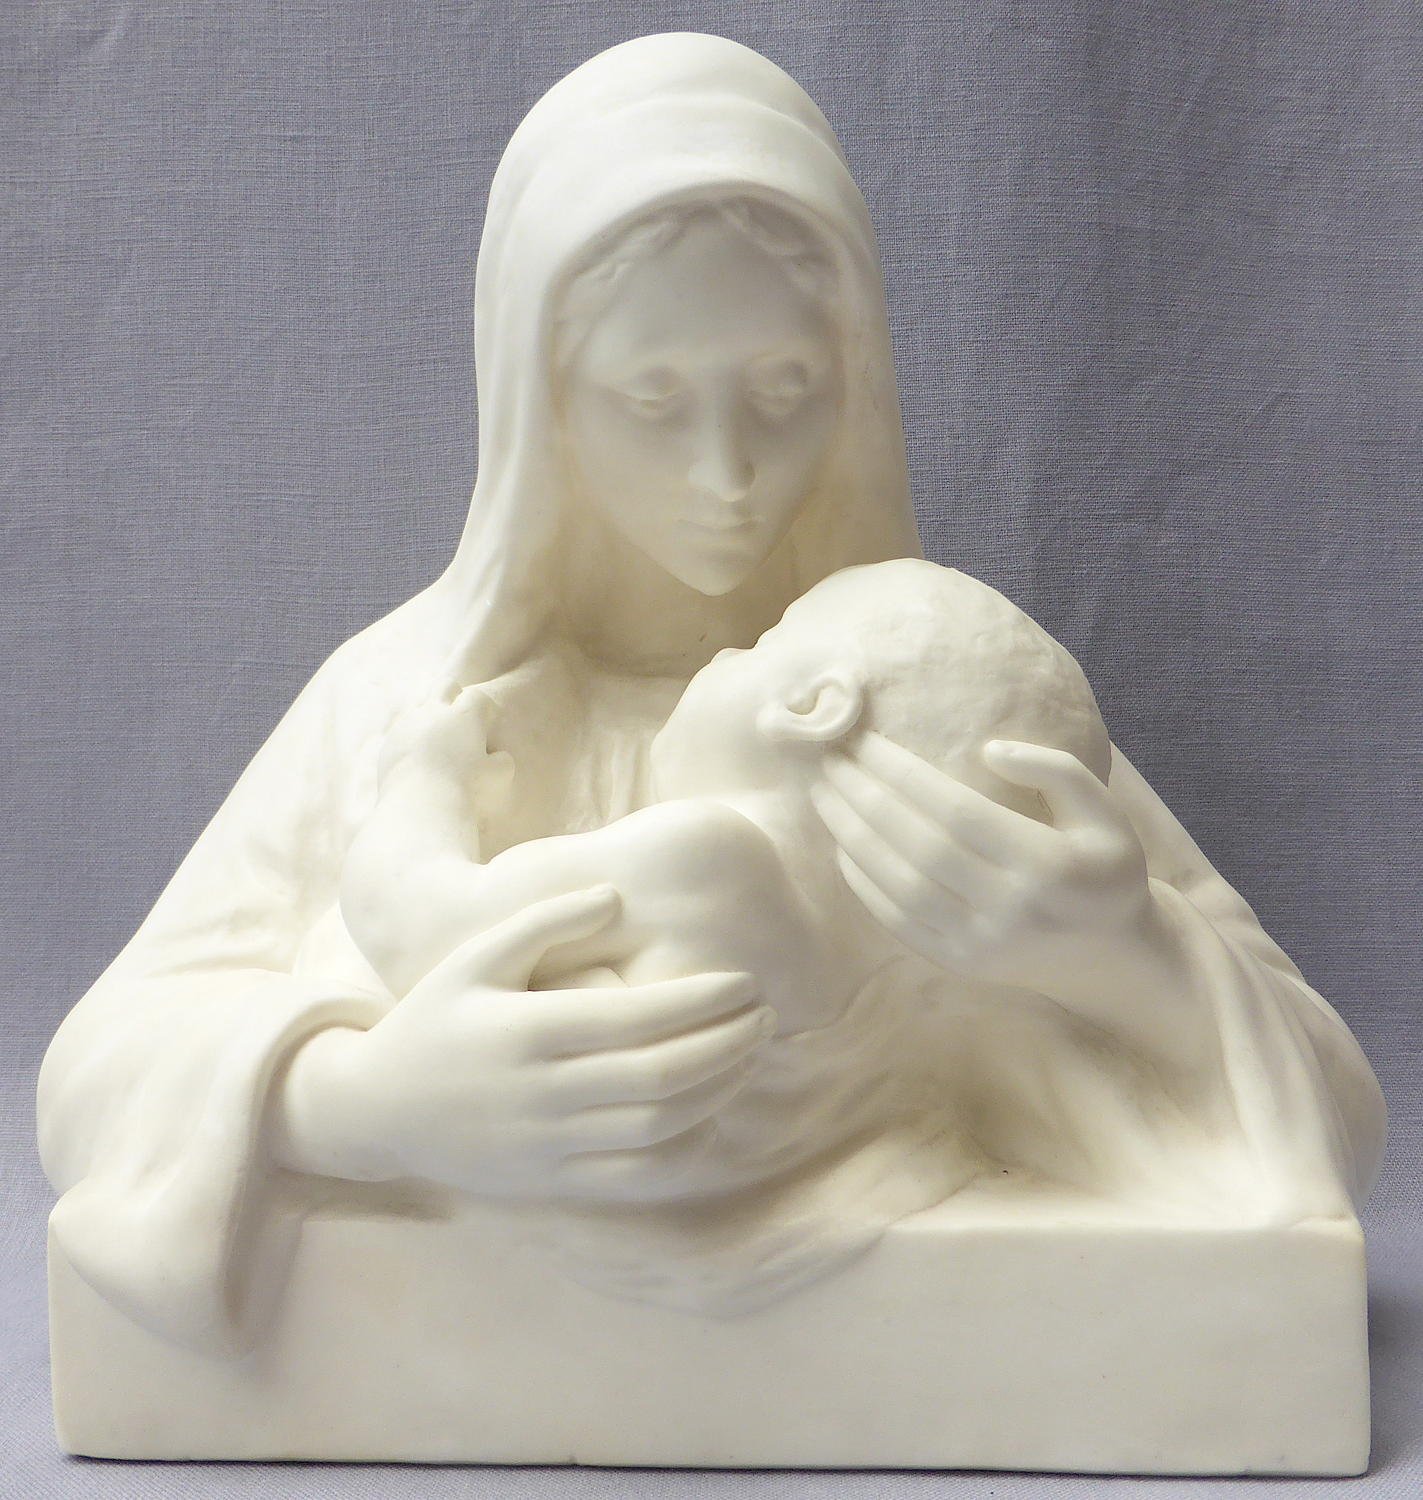 Sculpture of the Virgin & Child by Maria Caullet Nantard